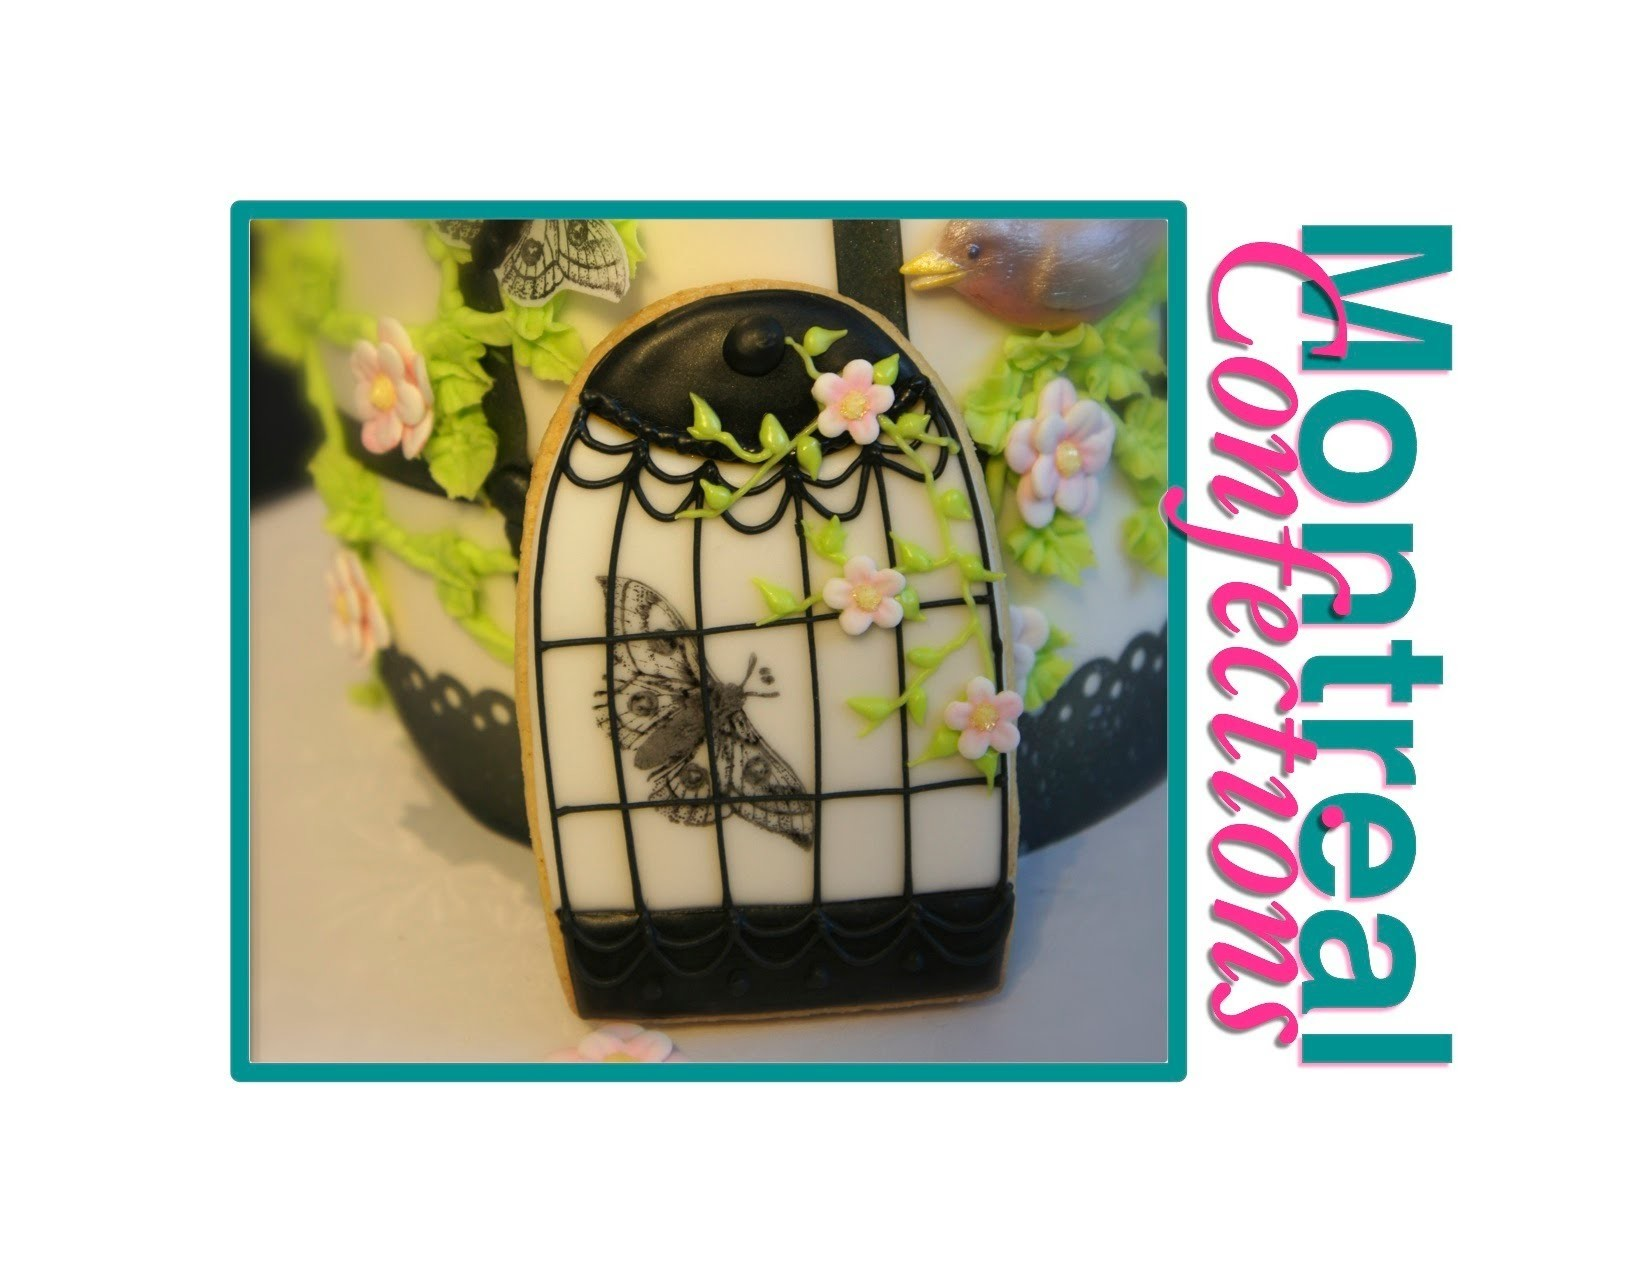 How to decorate cookies - Birdcage cookie tutorial - Step 4